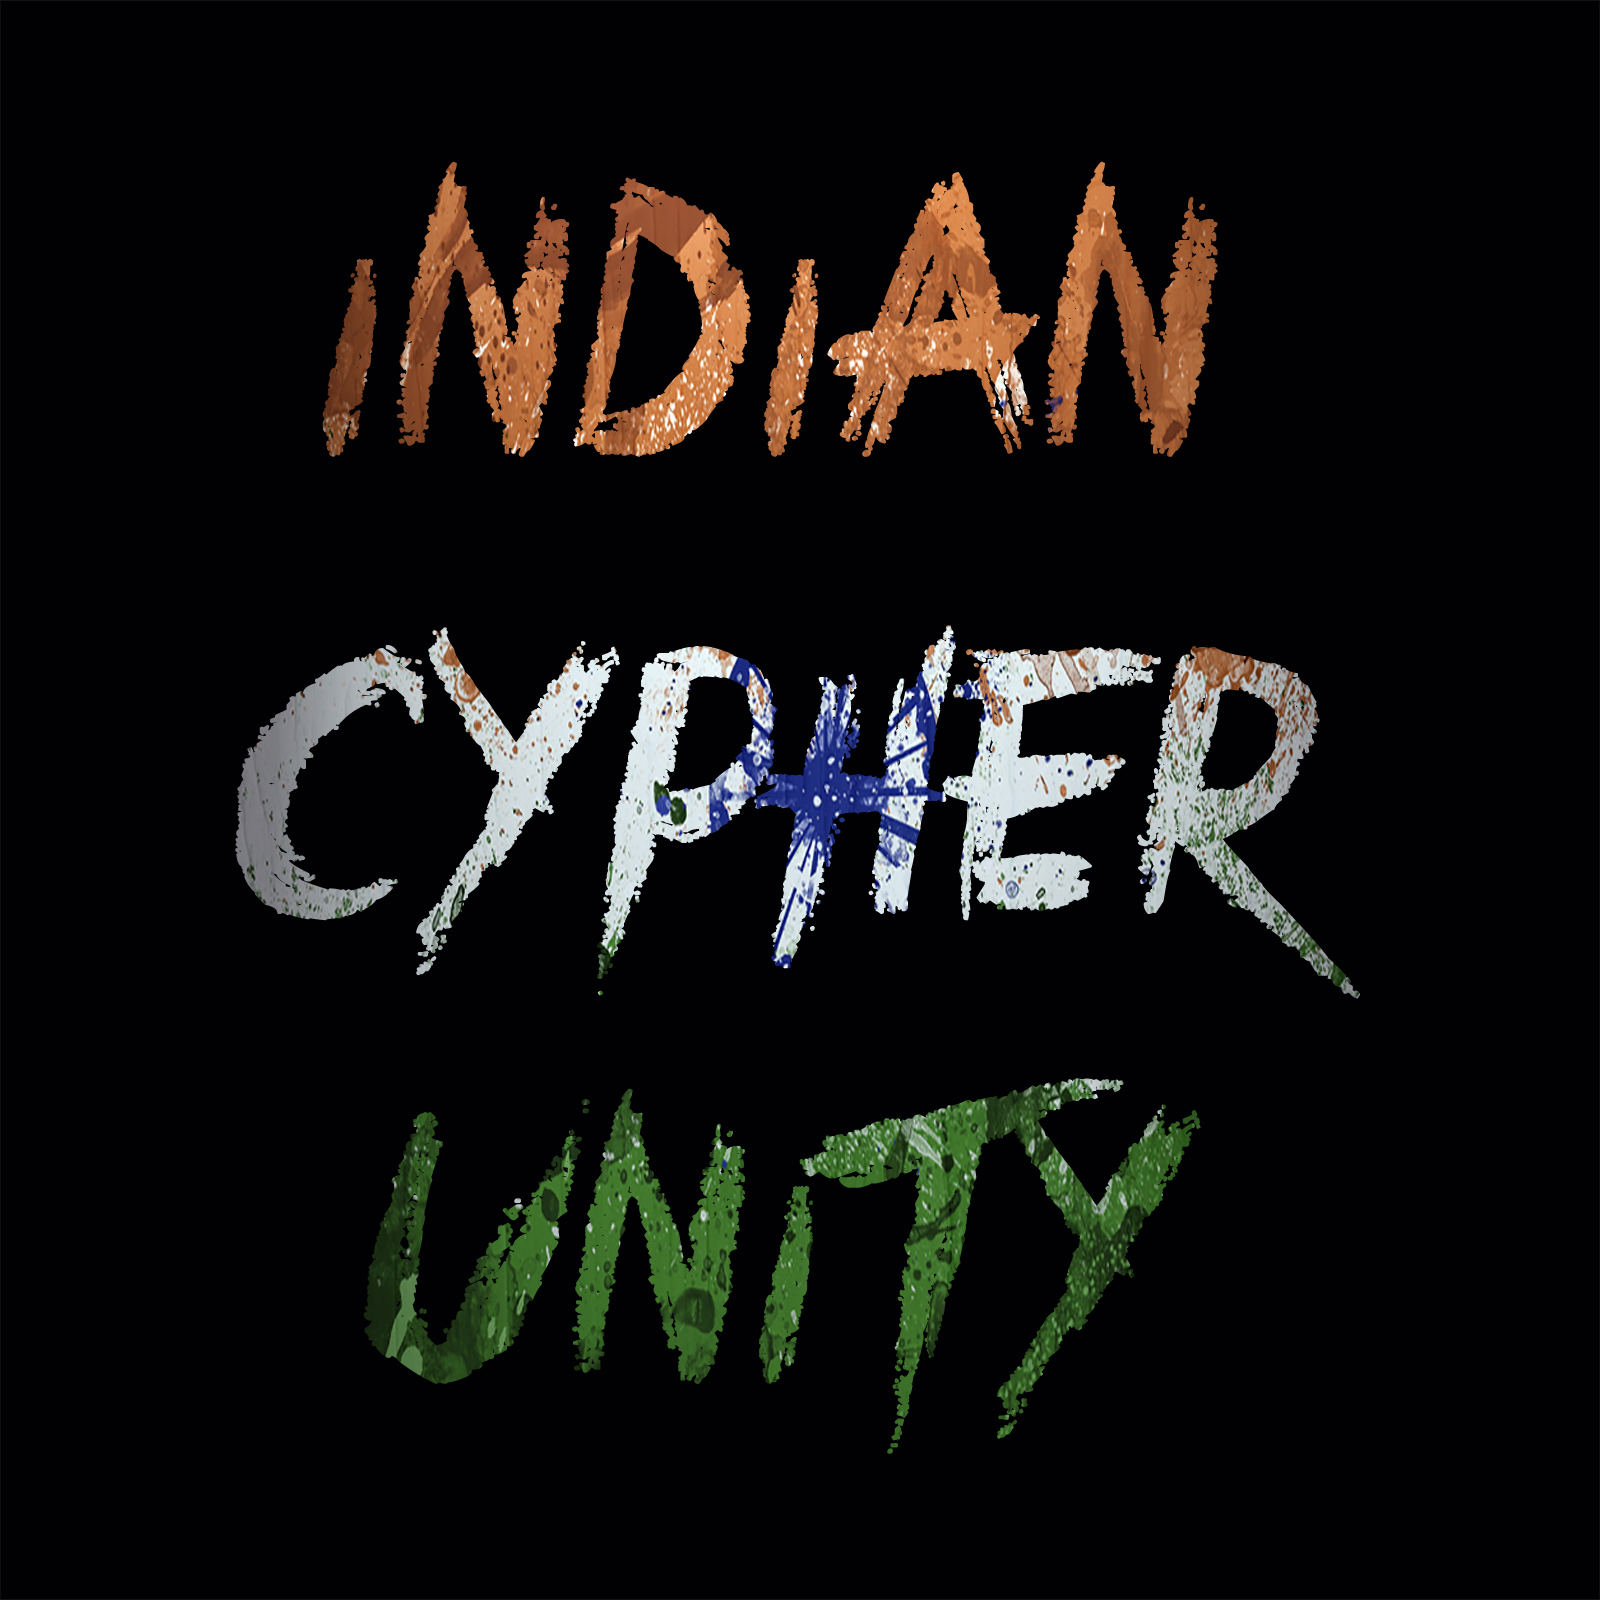 Indian Cypher Unity - #HipHopMeetsMetal FULL Video OUT NOW!